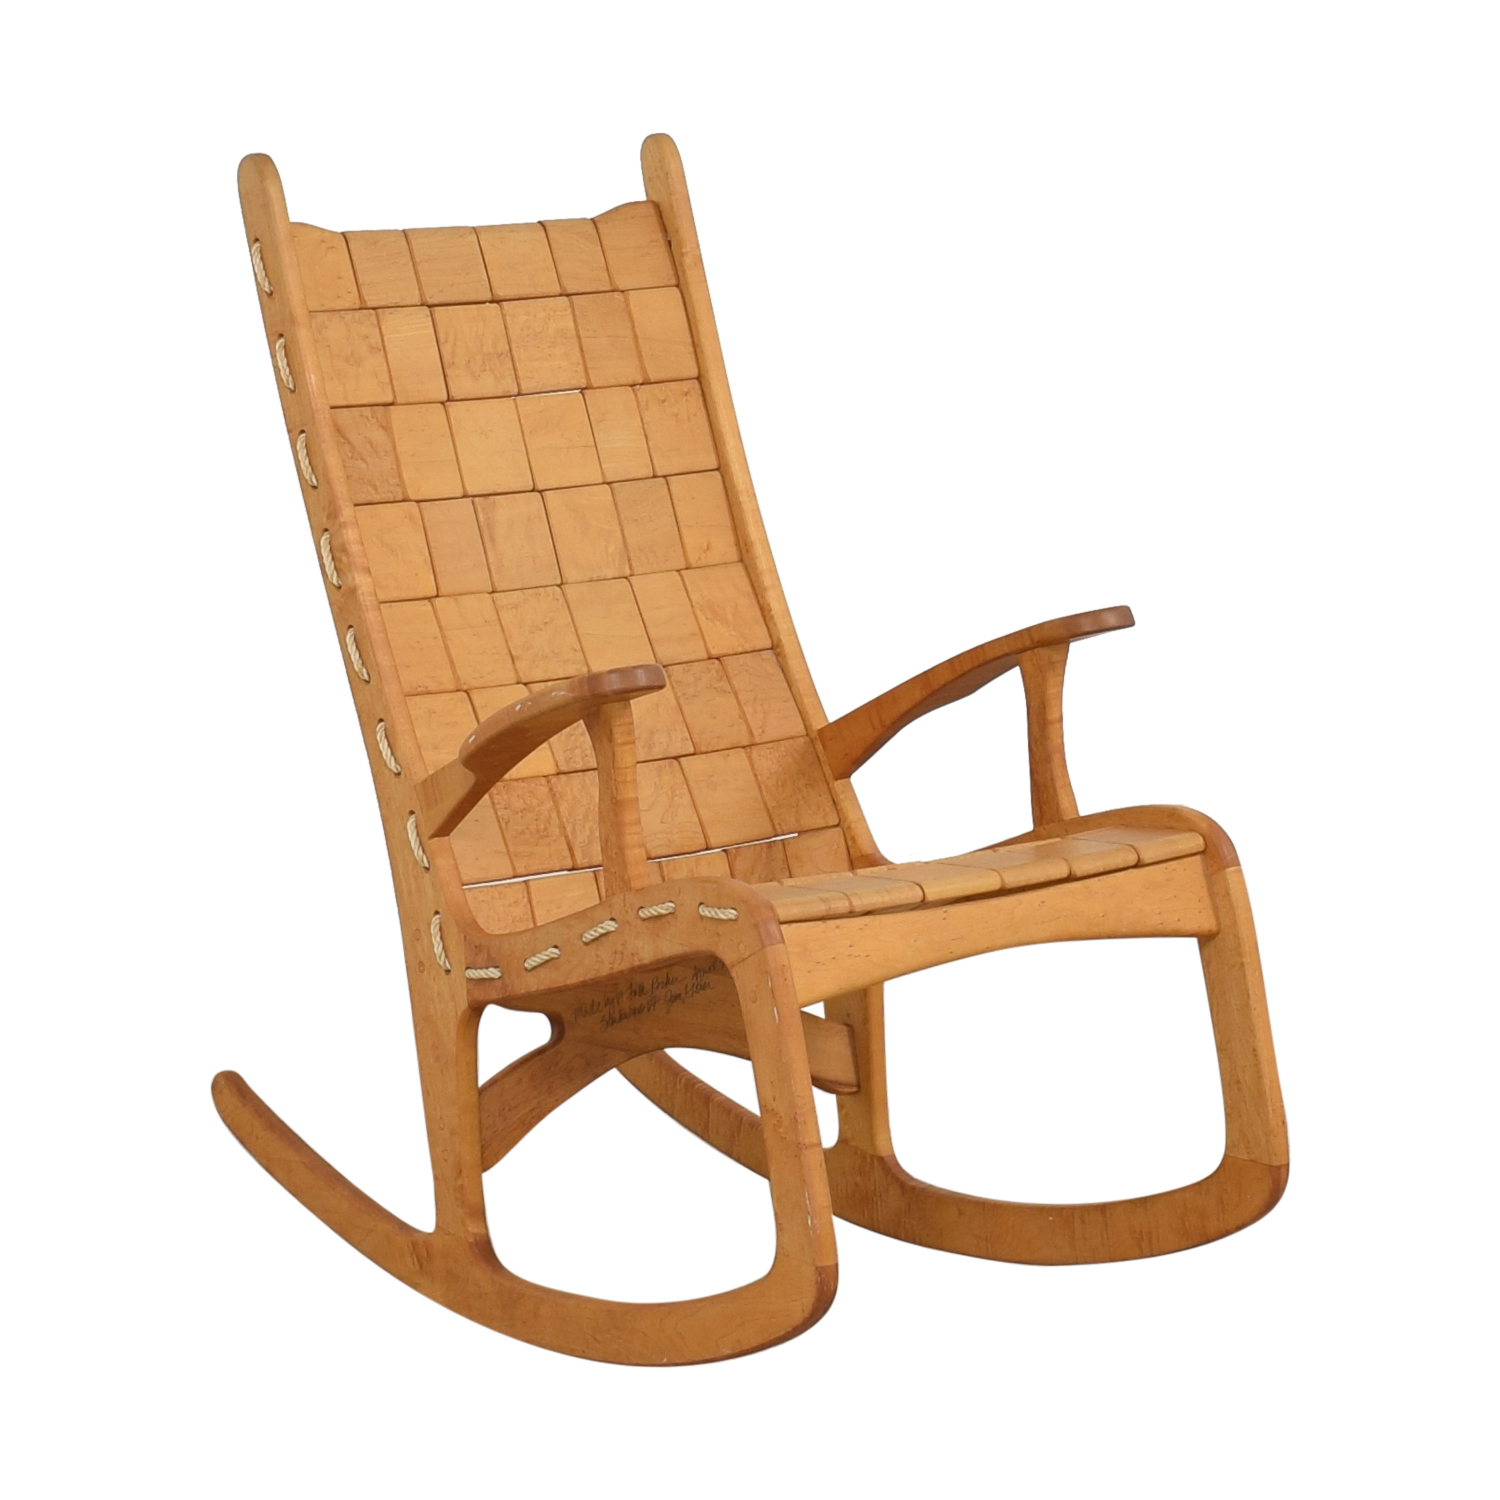 Vermont Woods Studios Vermont Woods Studios Quilted Rocking Chair pa